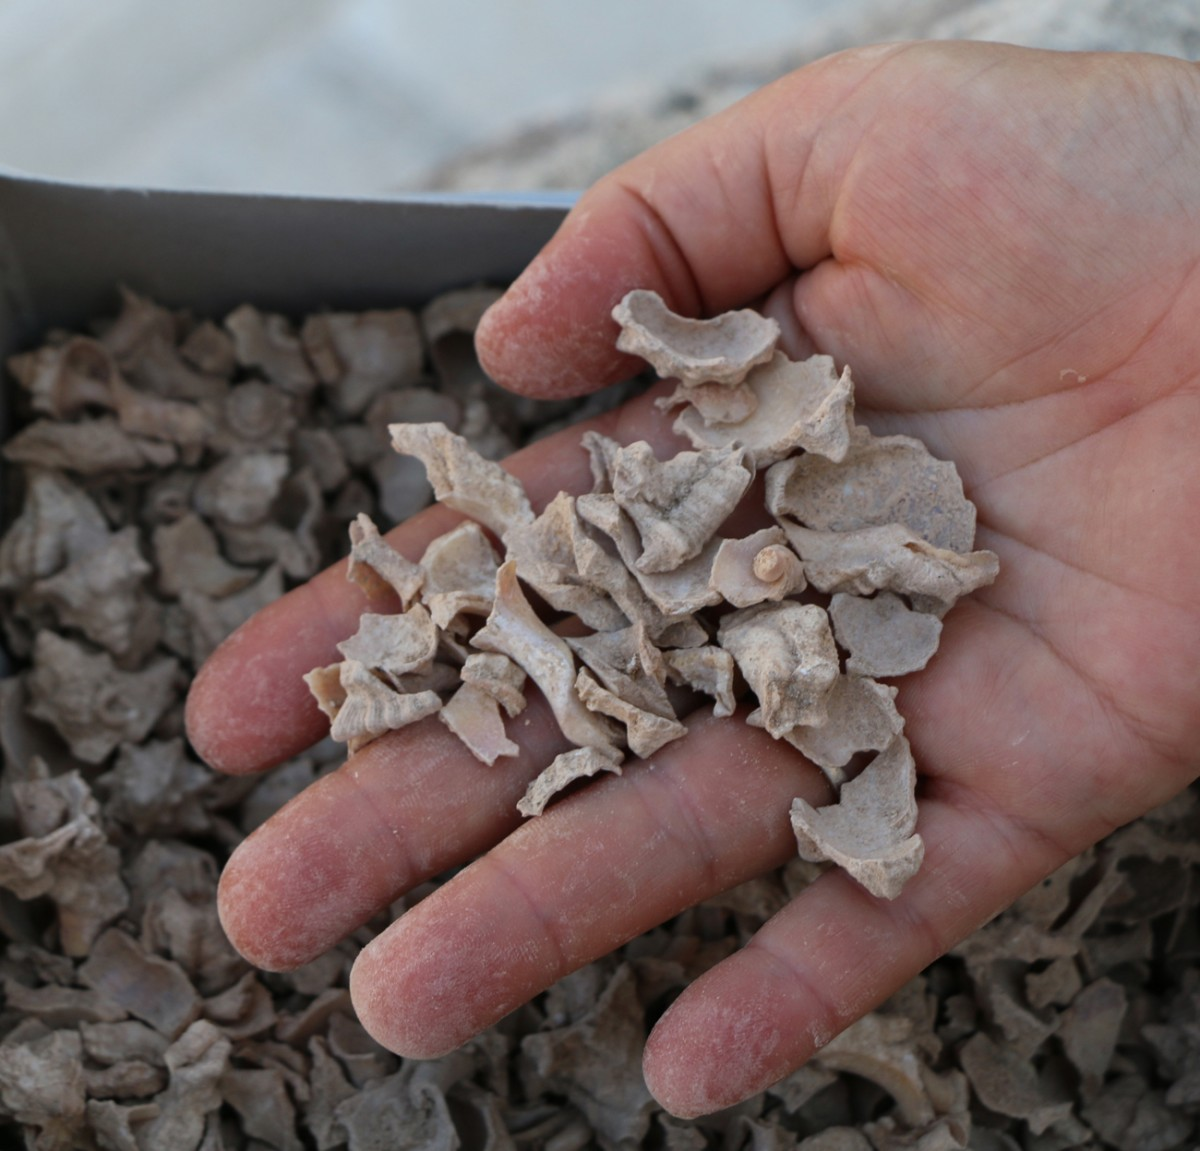 Fig. 2. Thick layer of crushed murex shells was found lying on the floor of one of the units